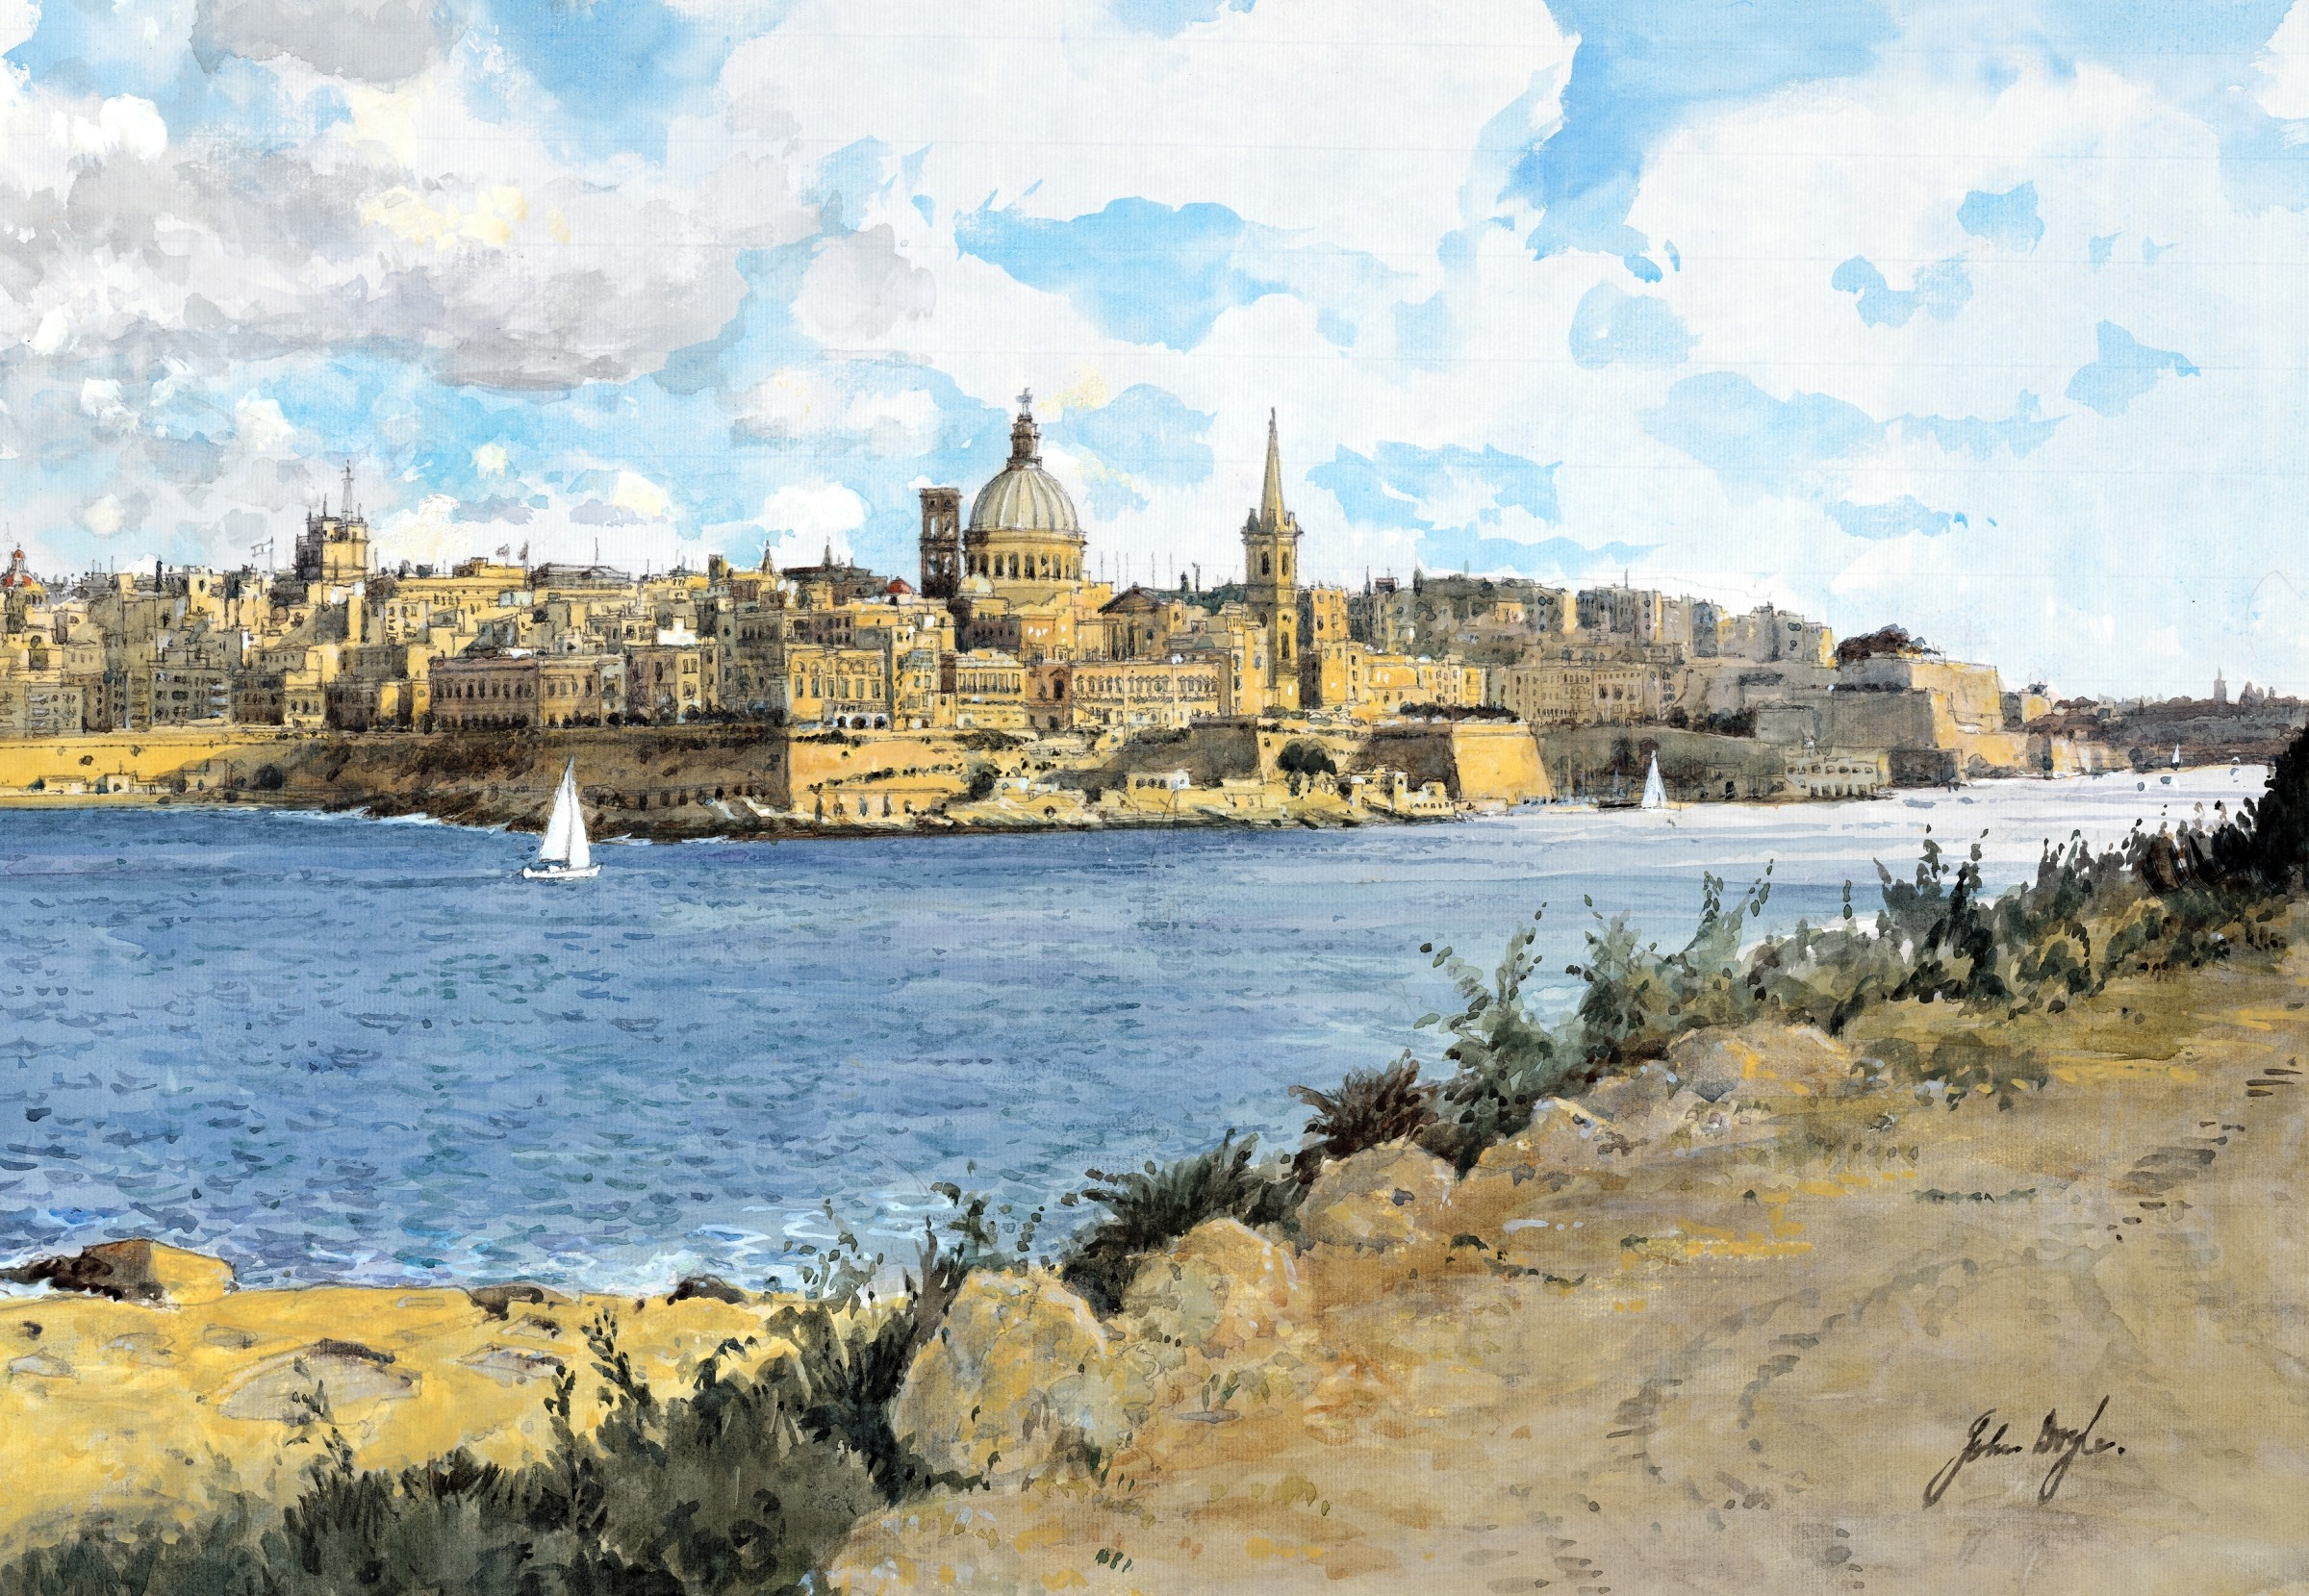 """<span class=""""link fancybox-details-link""""><a href=""""/artists/56-john-doyle/works/11519-john-doyle-valetta-from-dragut-point/"""">View Detail Page</a></span><div class=""""artist""""><span class=""""artist""""><strong>John Doyle</strong></span></div><div class=""""title""""><em>Valetta from Dragut Point</em></div><div class=""""medium"""">watercolour</div>"""